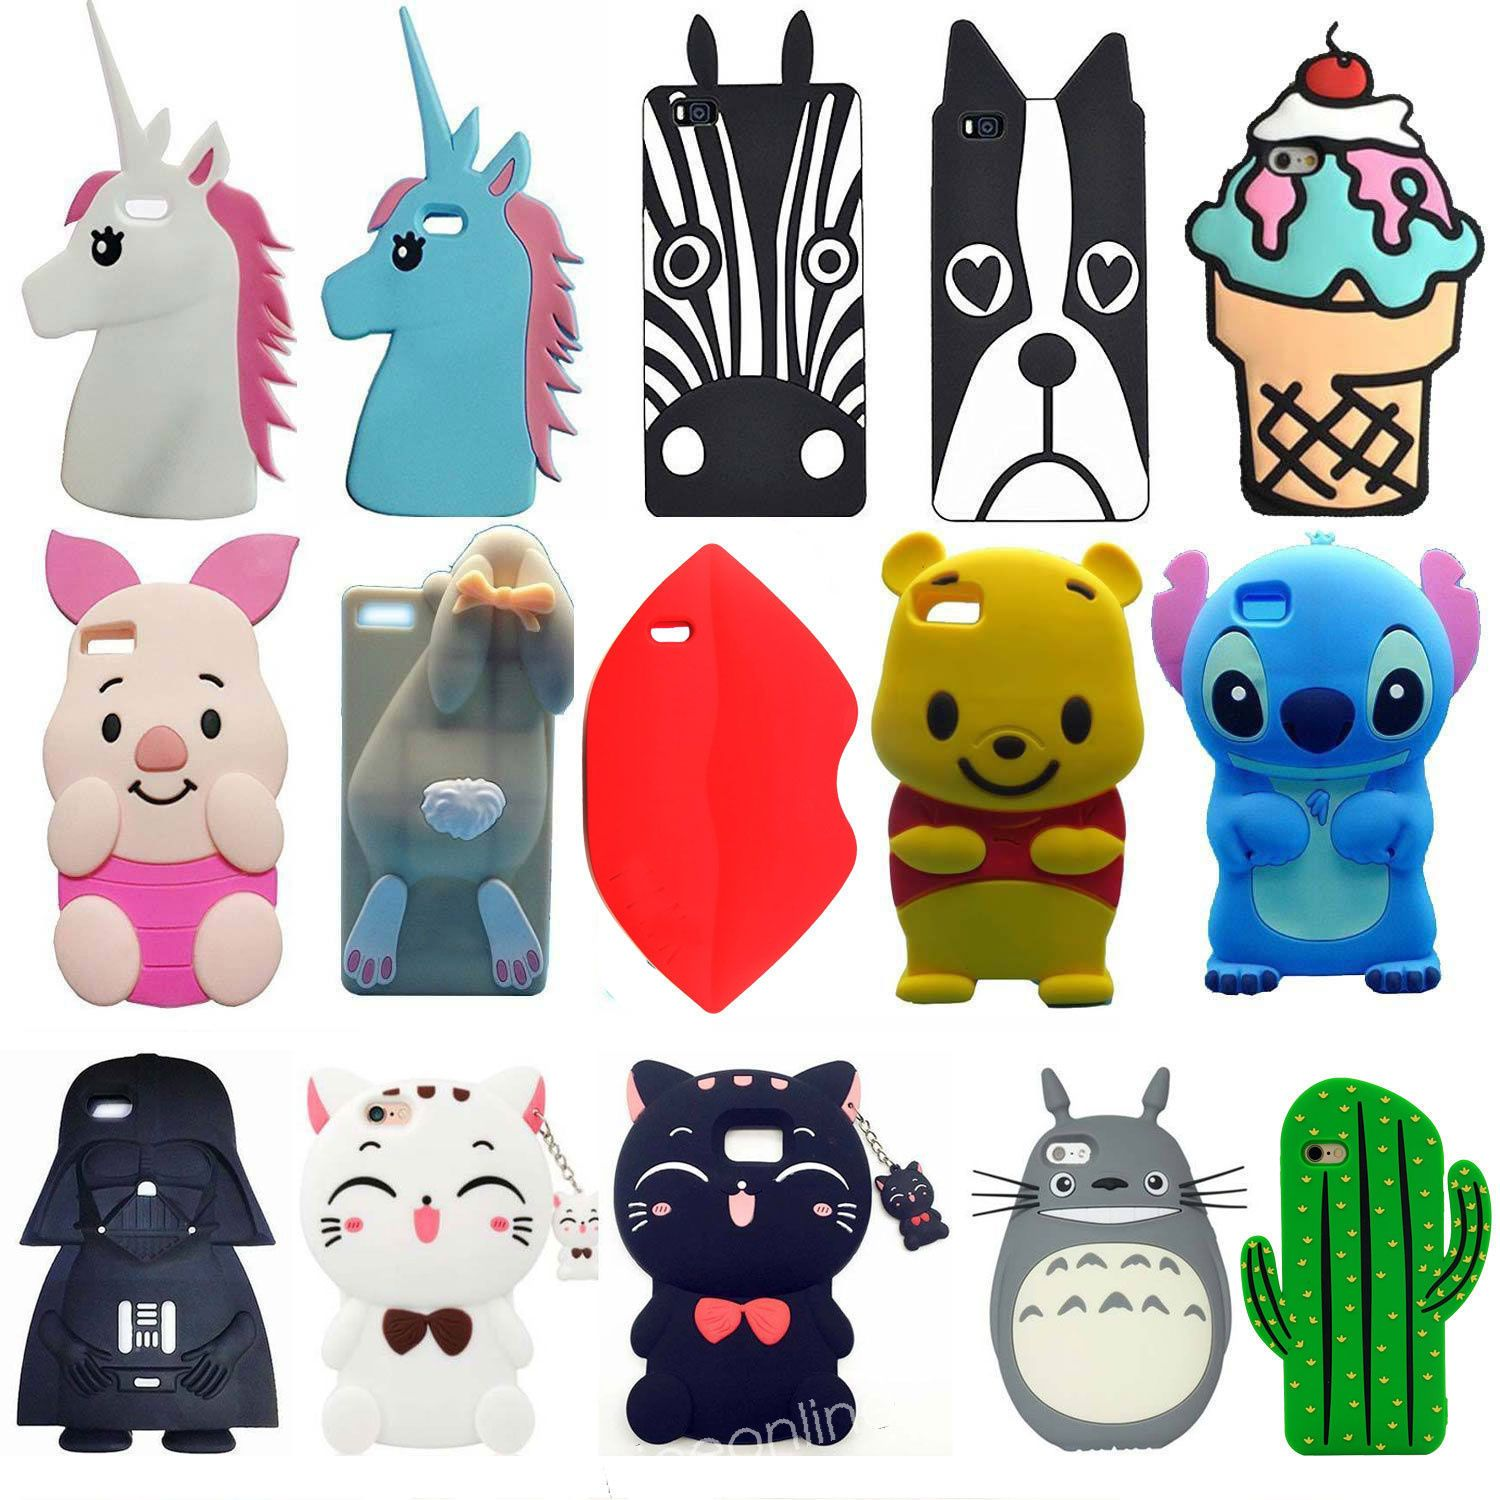 3D Newest Cartoon Disney Soft Silicone Cover Case Skin For Huawei ...